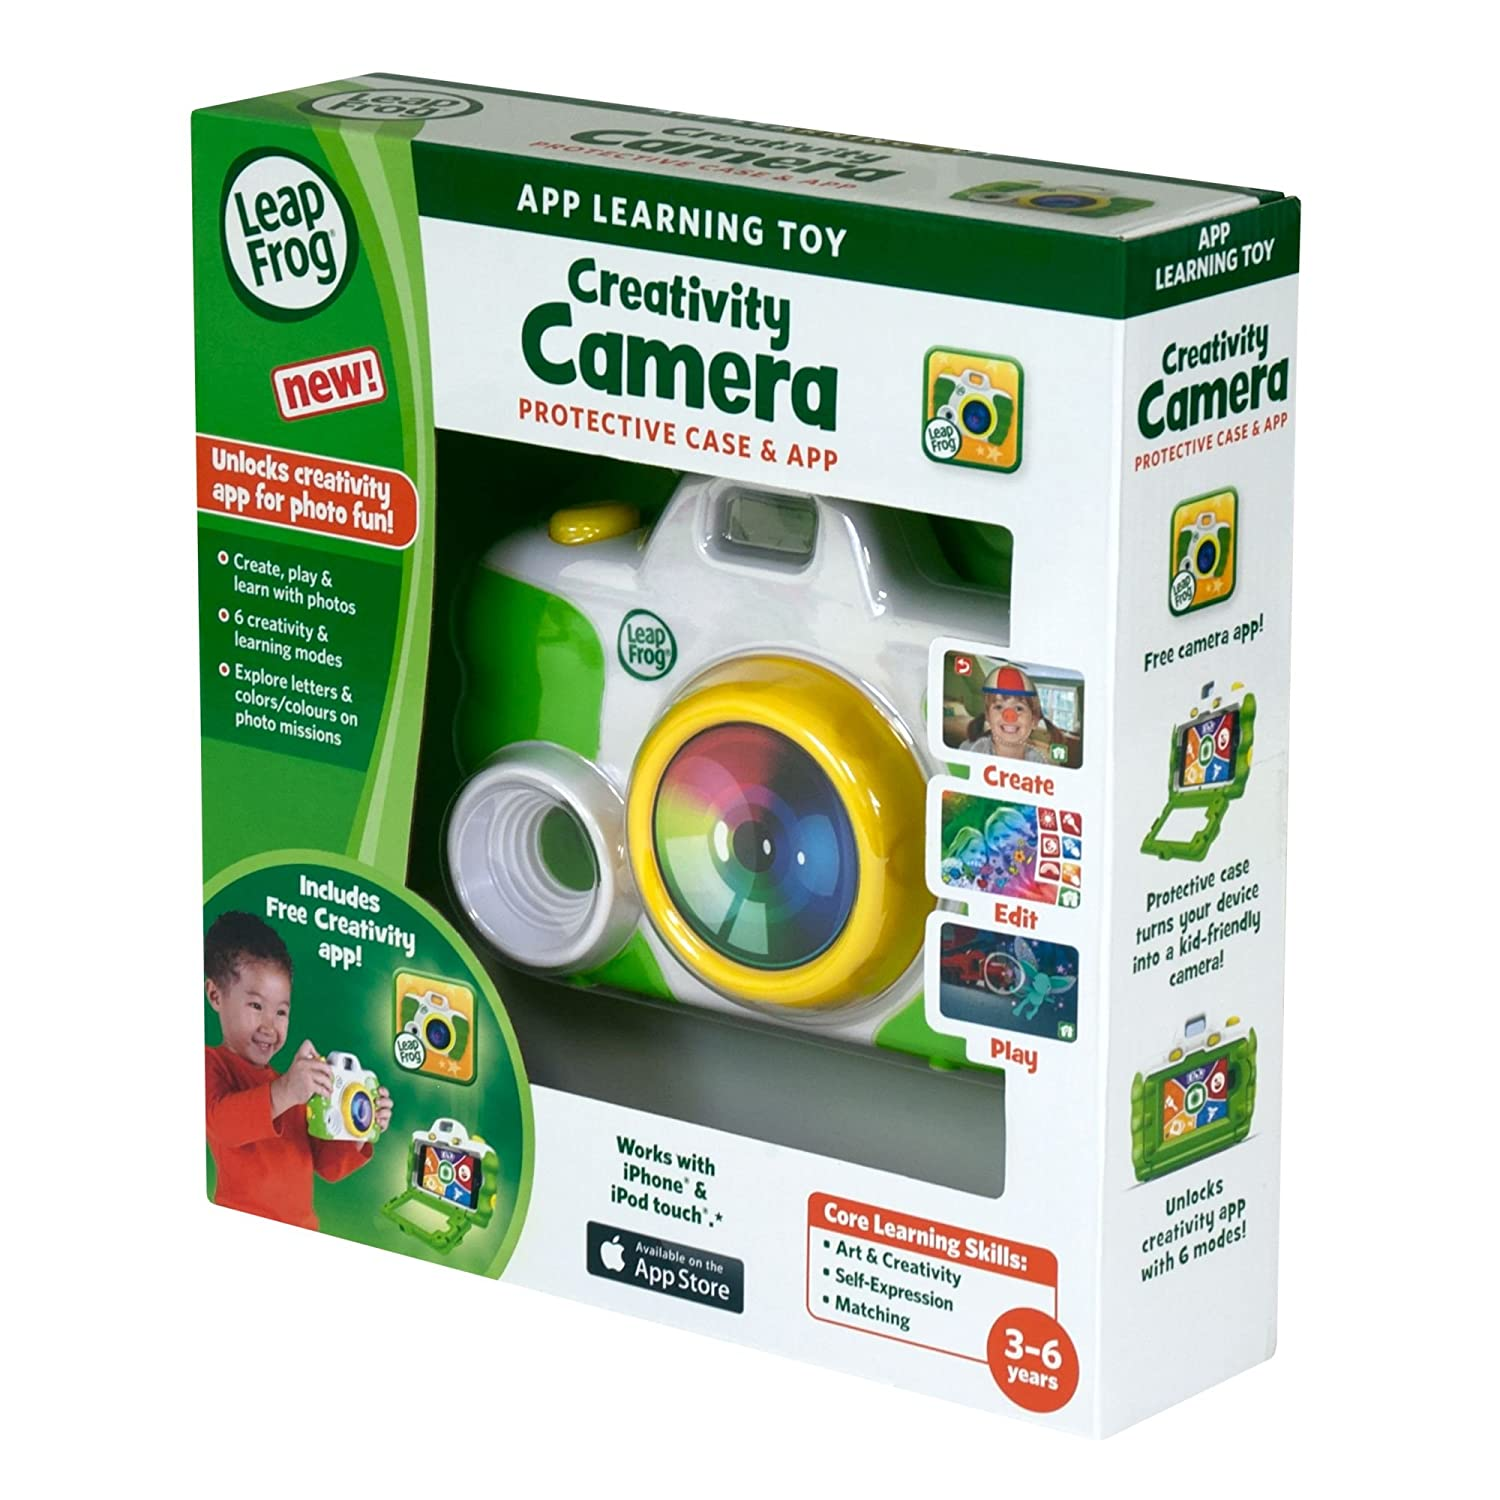 LeapFrog Creativity Camera App with Protective Case (Green) ToyCenter 80-19234E